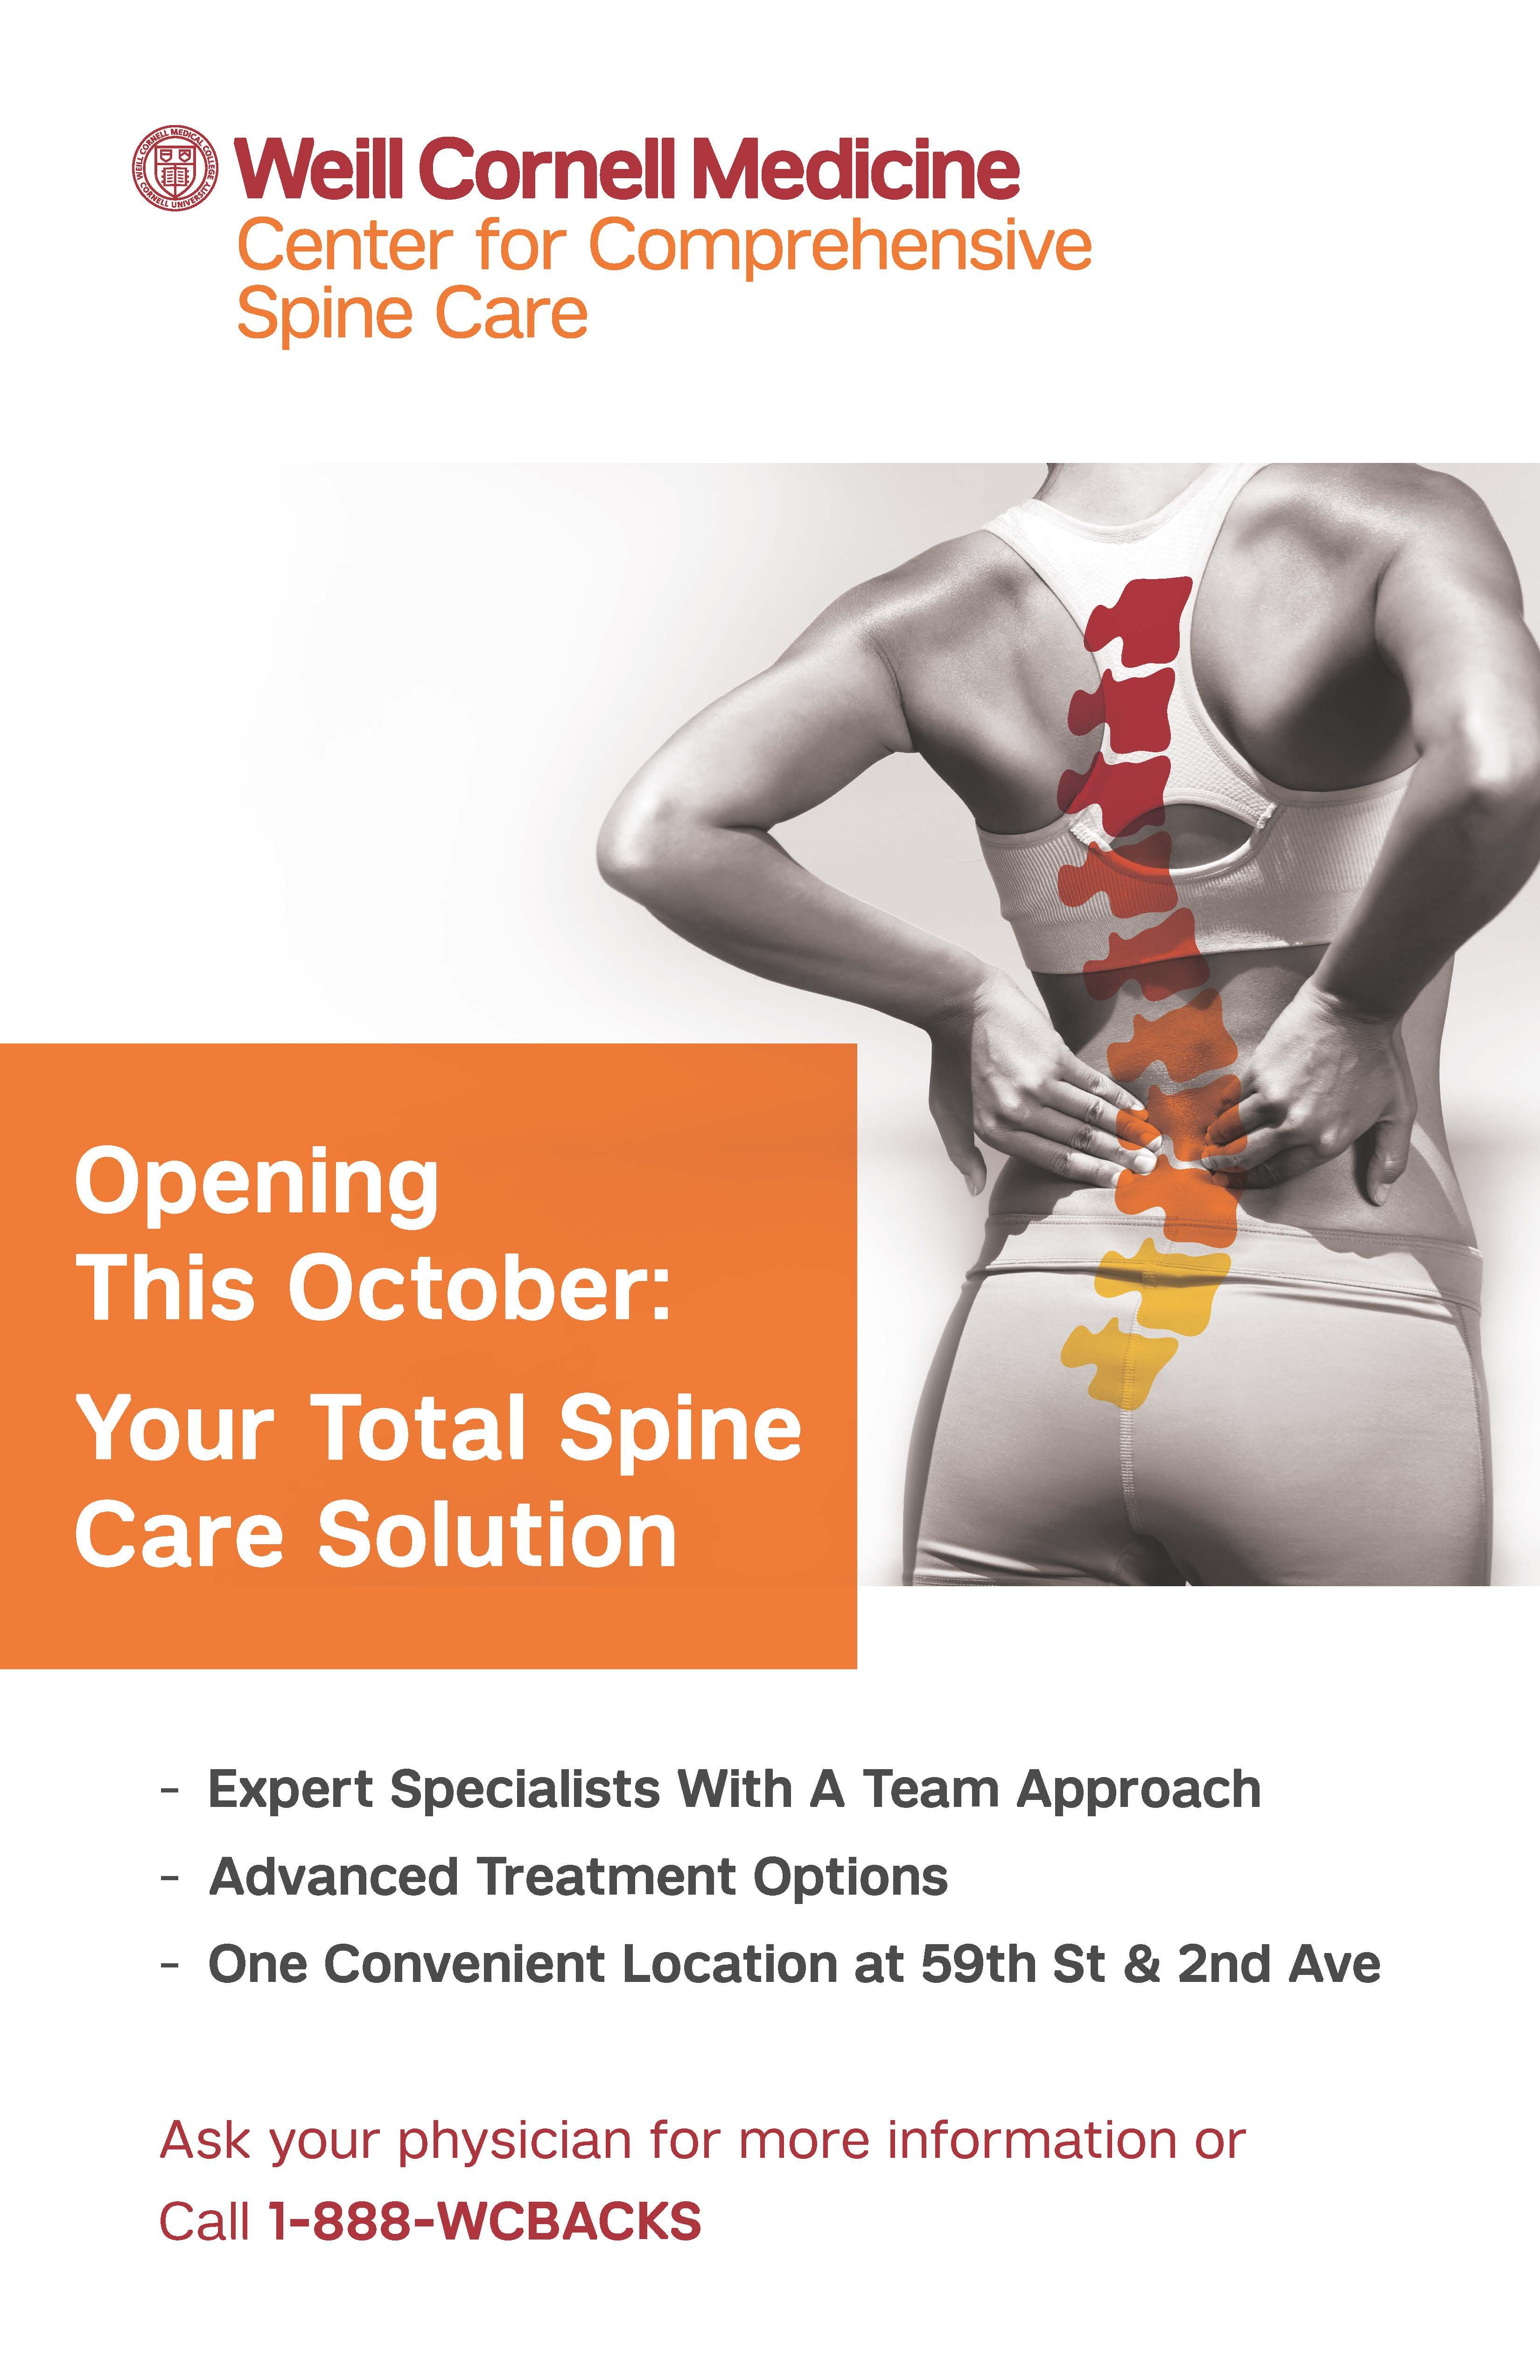 Center for Comprehensive Spine Care